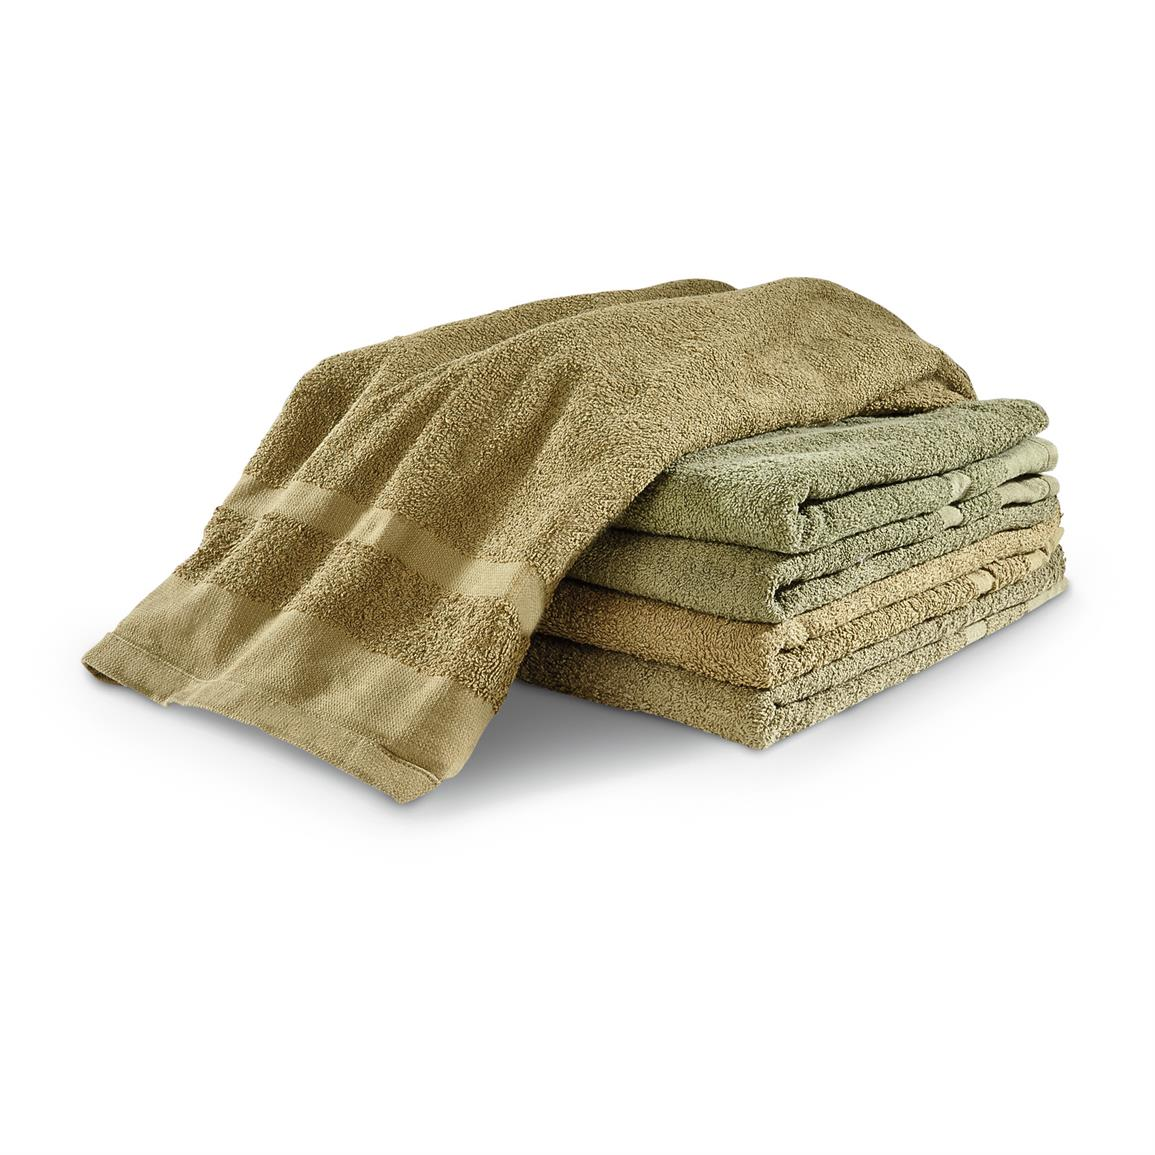 Dutch Military Issue Heavyweight Bath Towels, Olive Drab, 5 Pack, Used